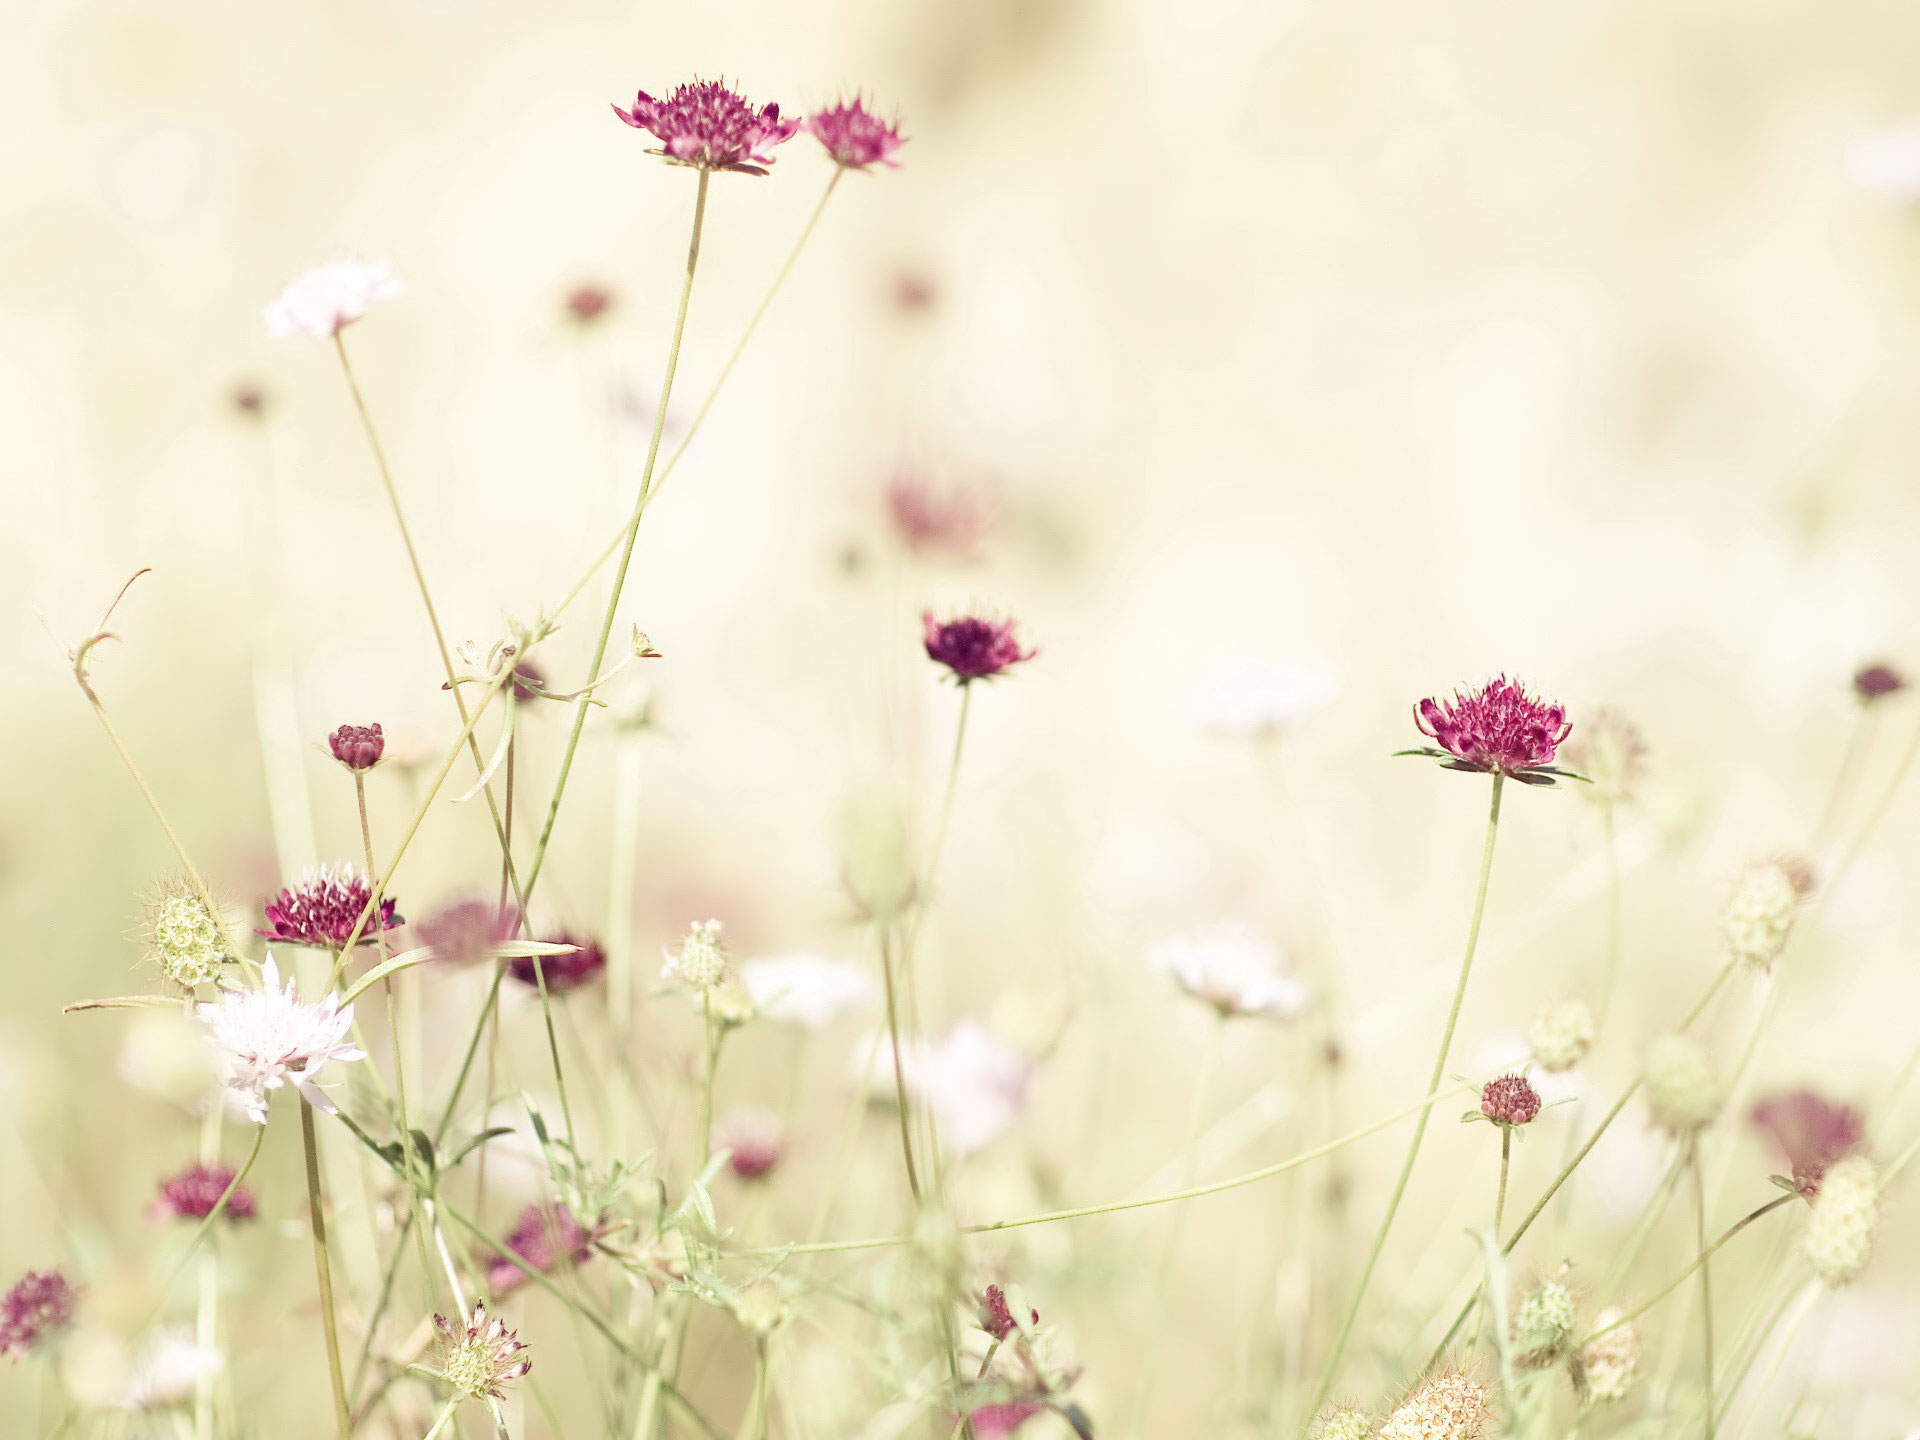 Spring Flowers Photos Wallpaper High Definition High Quality